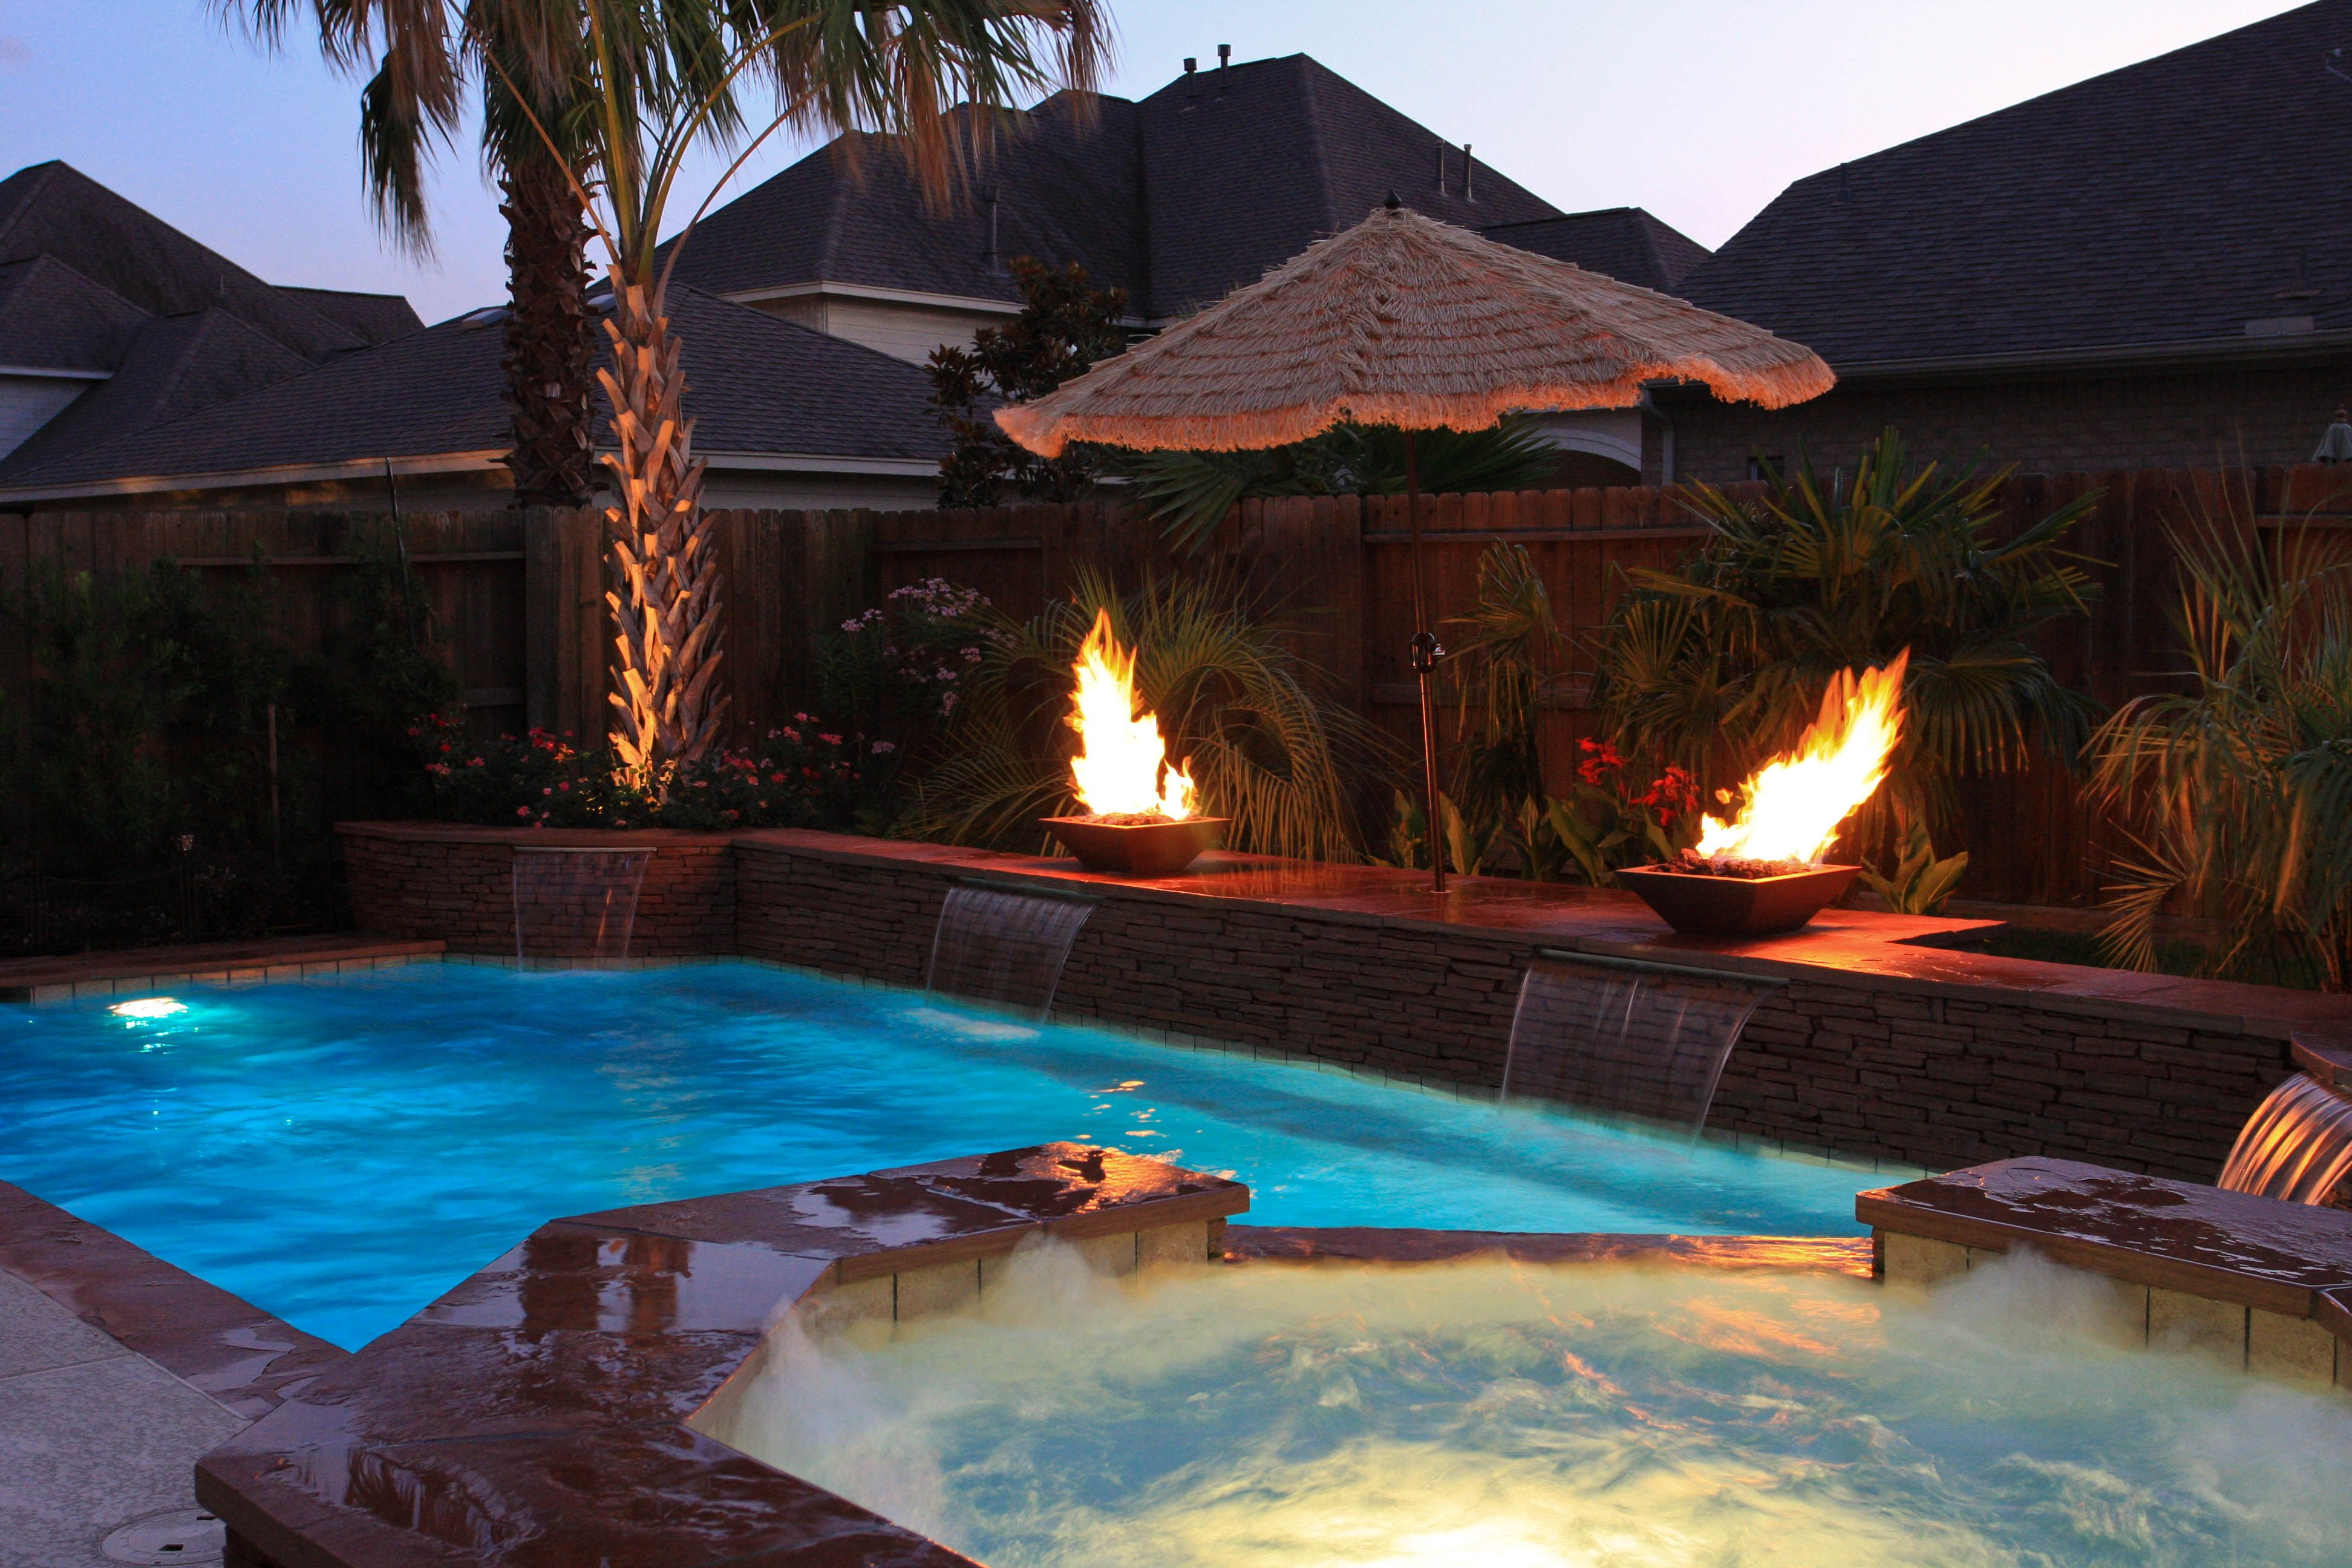 Fire Bowls with Sheer Descents | Swimming Pool Fire Features ...